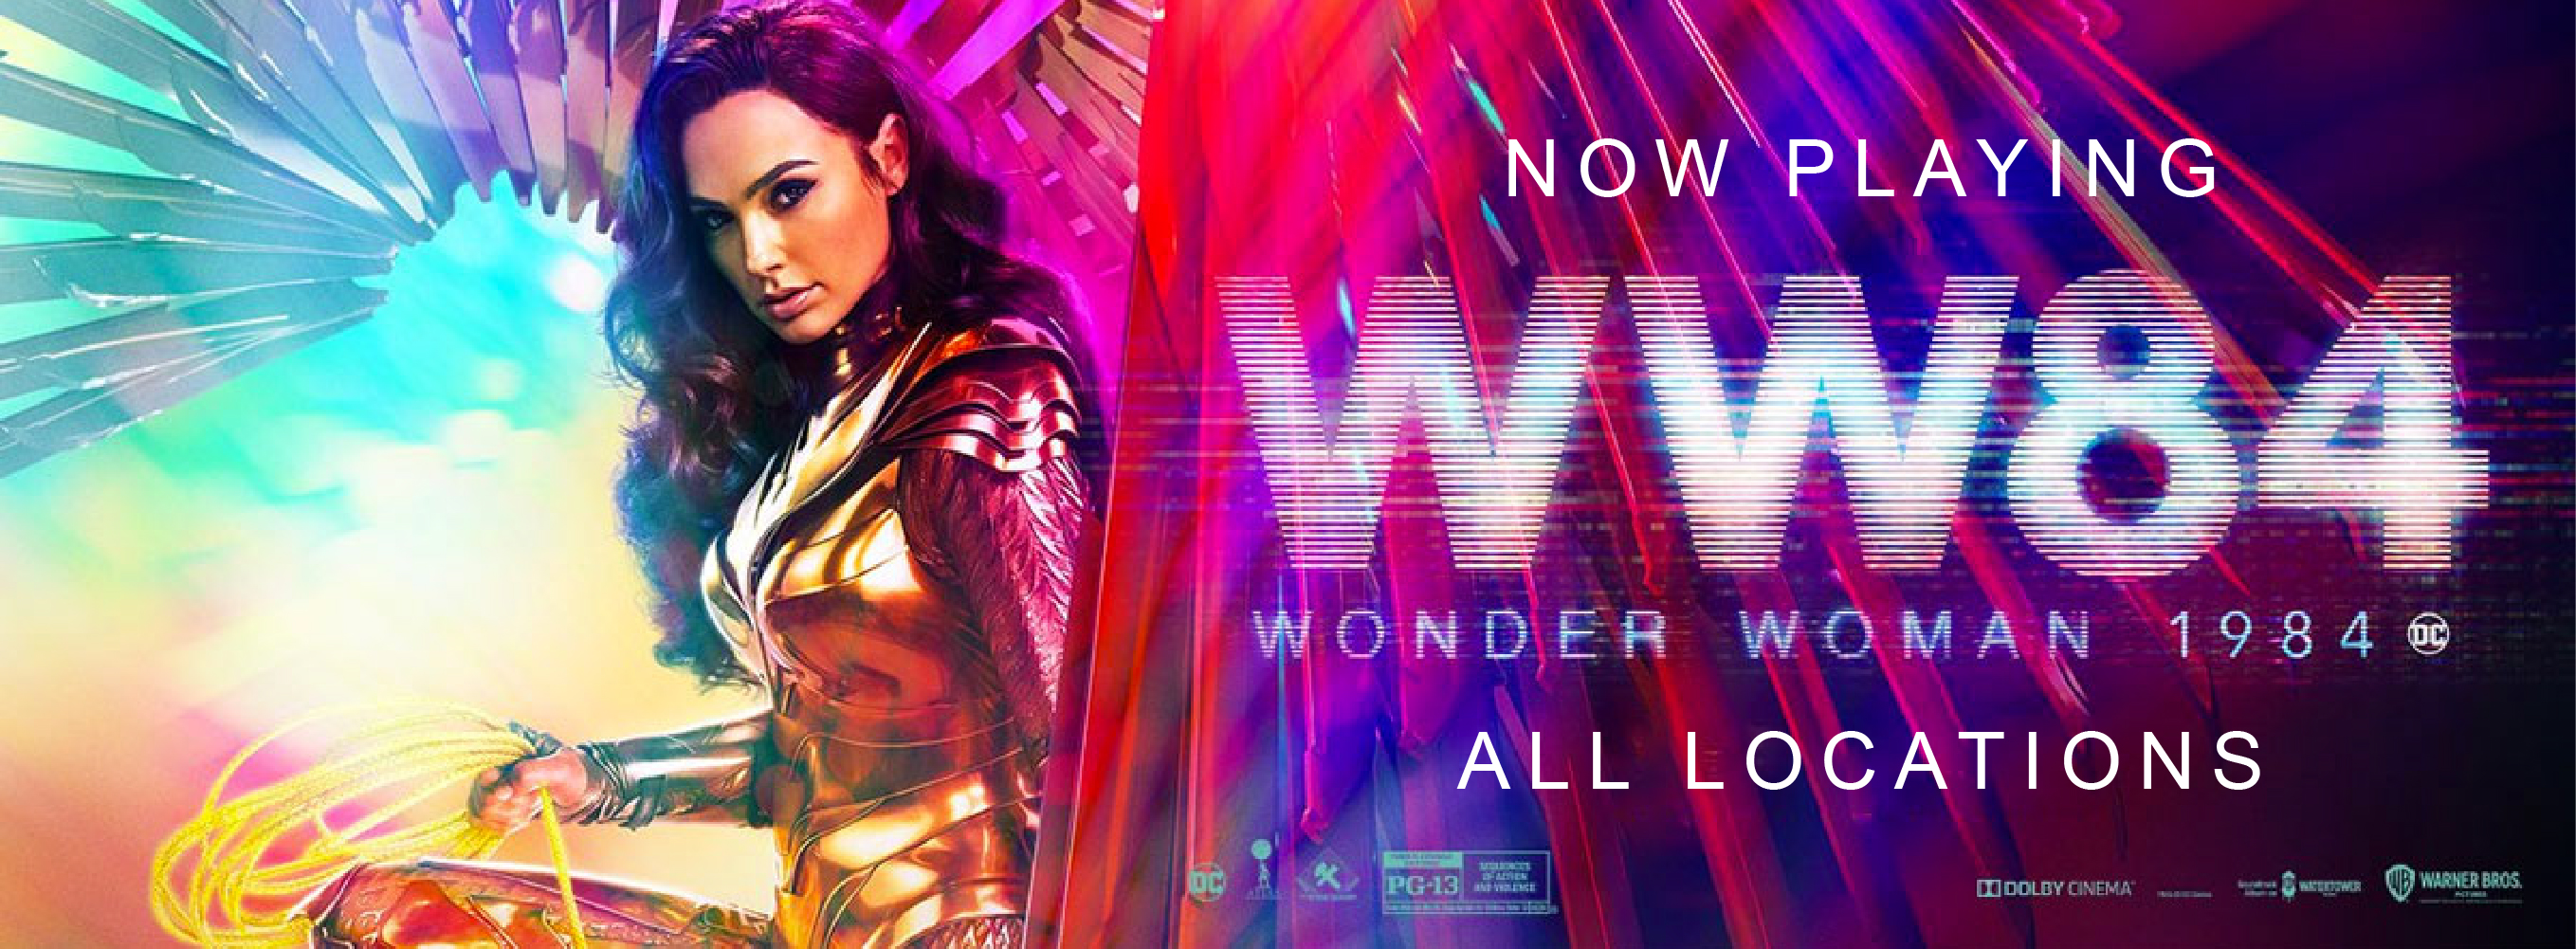 Get tickets to Wonder Woman 1984 Today!